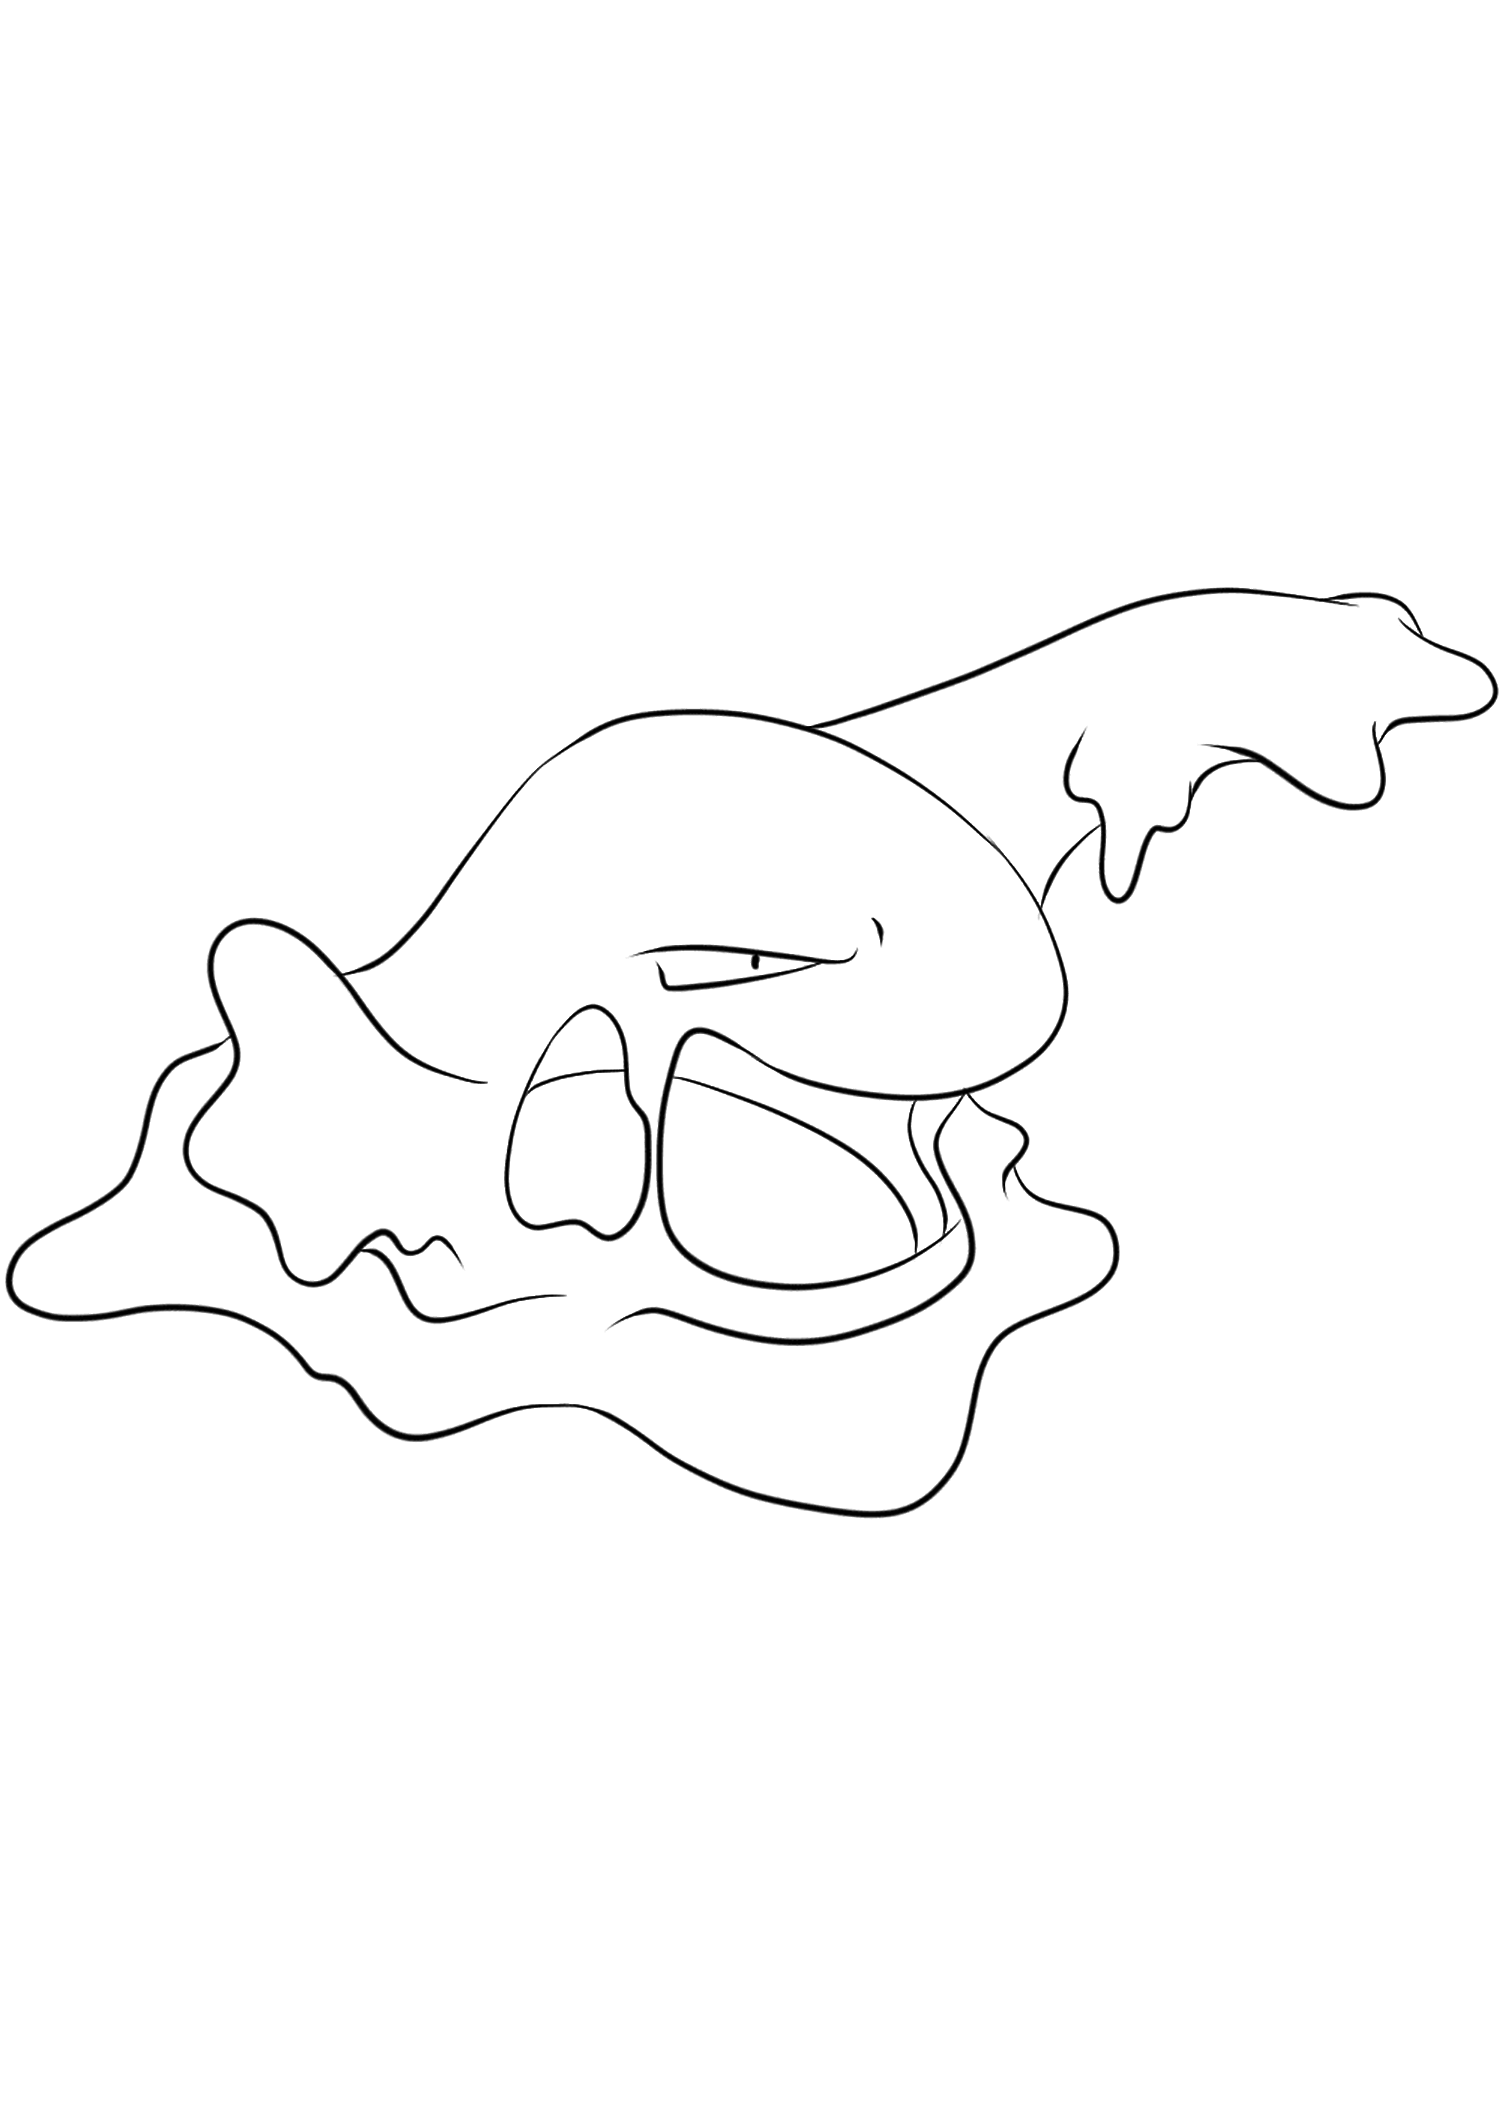 Muk (No.89)Muk Coloring page, Generation I Pokemon of type Poison and DarkOriginal image credit: Pokemon linearts by Lilly Gerbil on Deviantart.Permission:  All rights reserved © Pokemon company and Ken Sugimori.